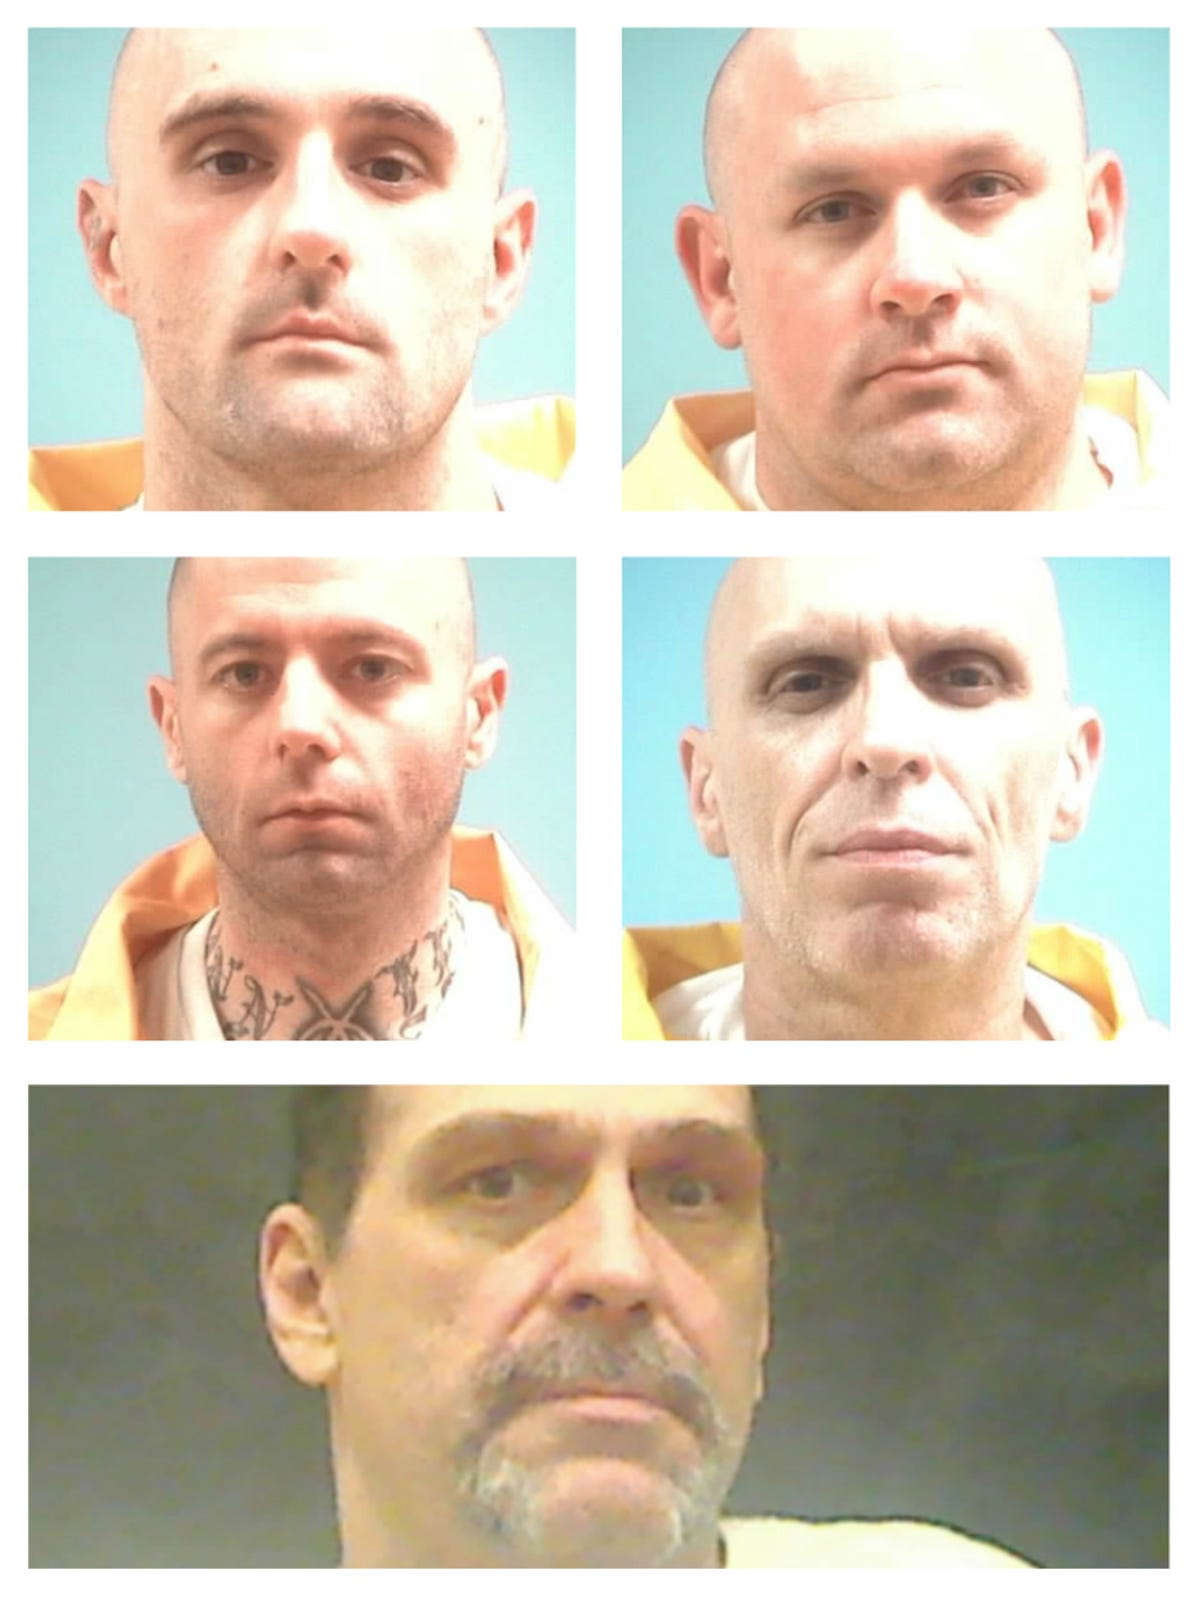 Dying to get out: Former Aryan Brotherhood member's message